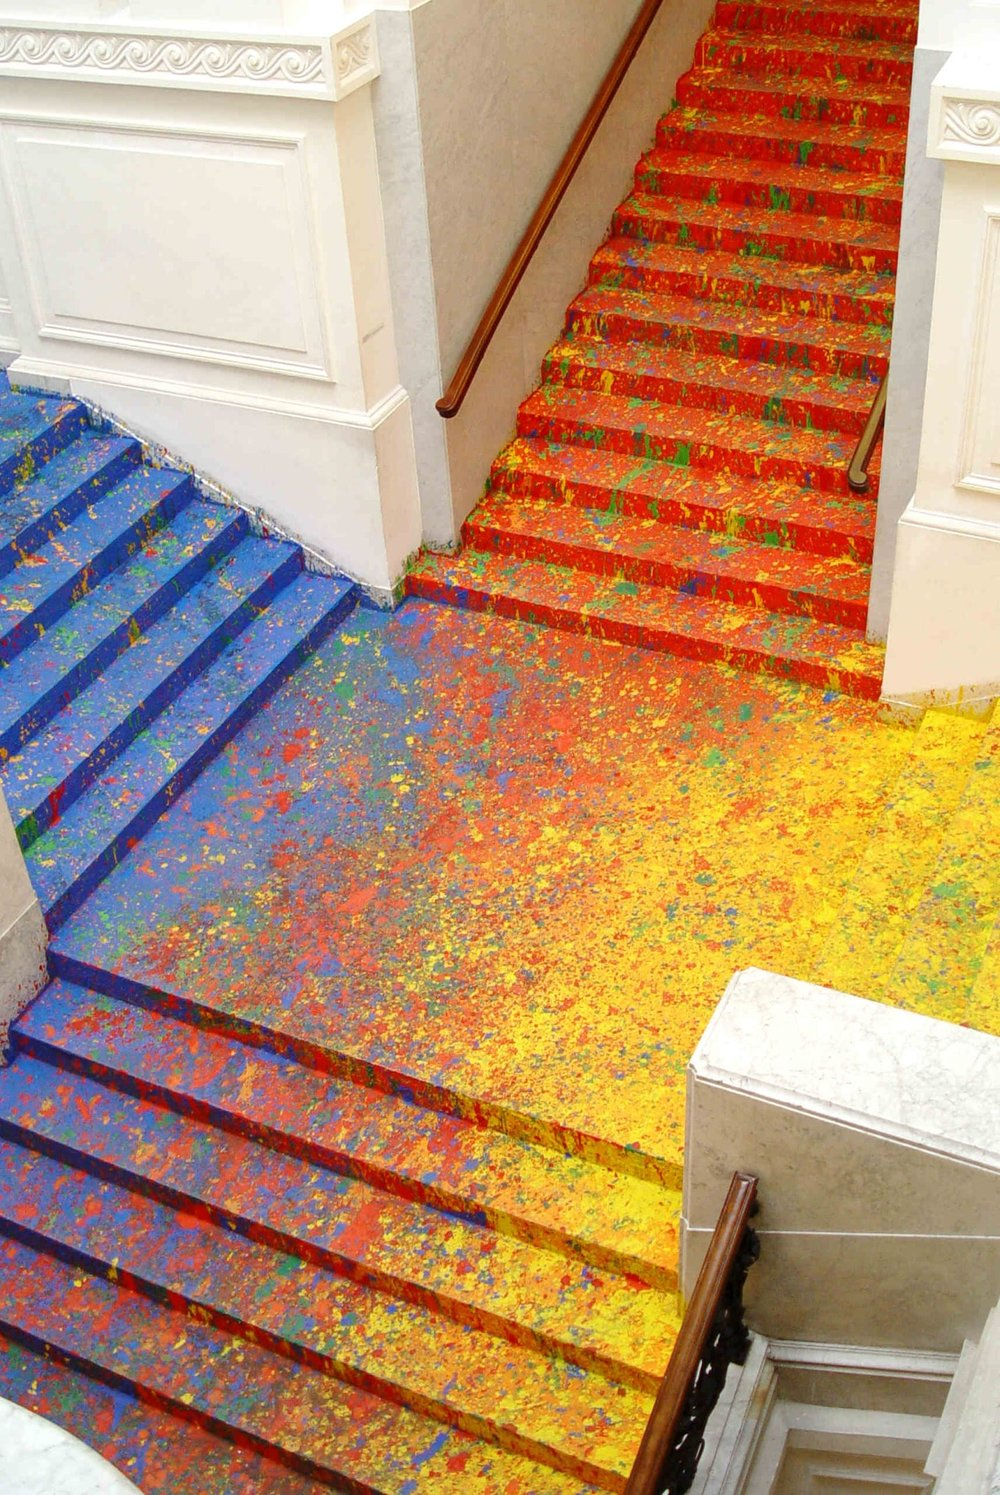 colored-floor-02.jpg